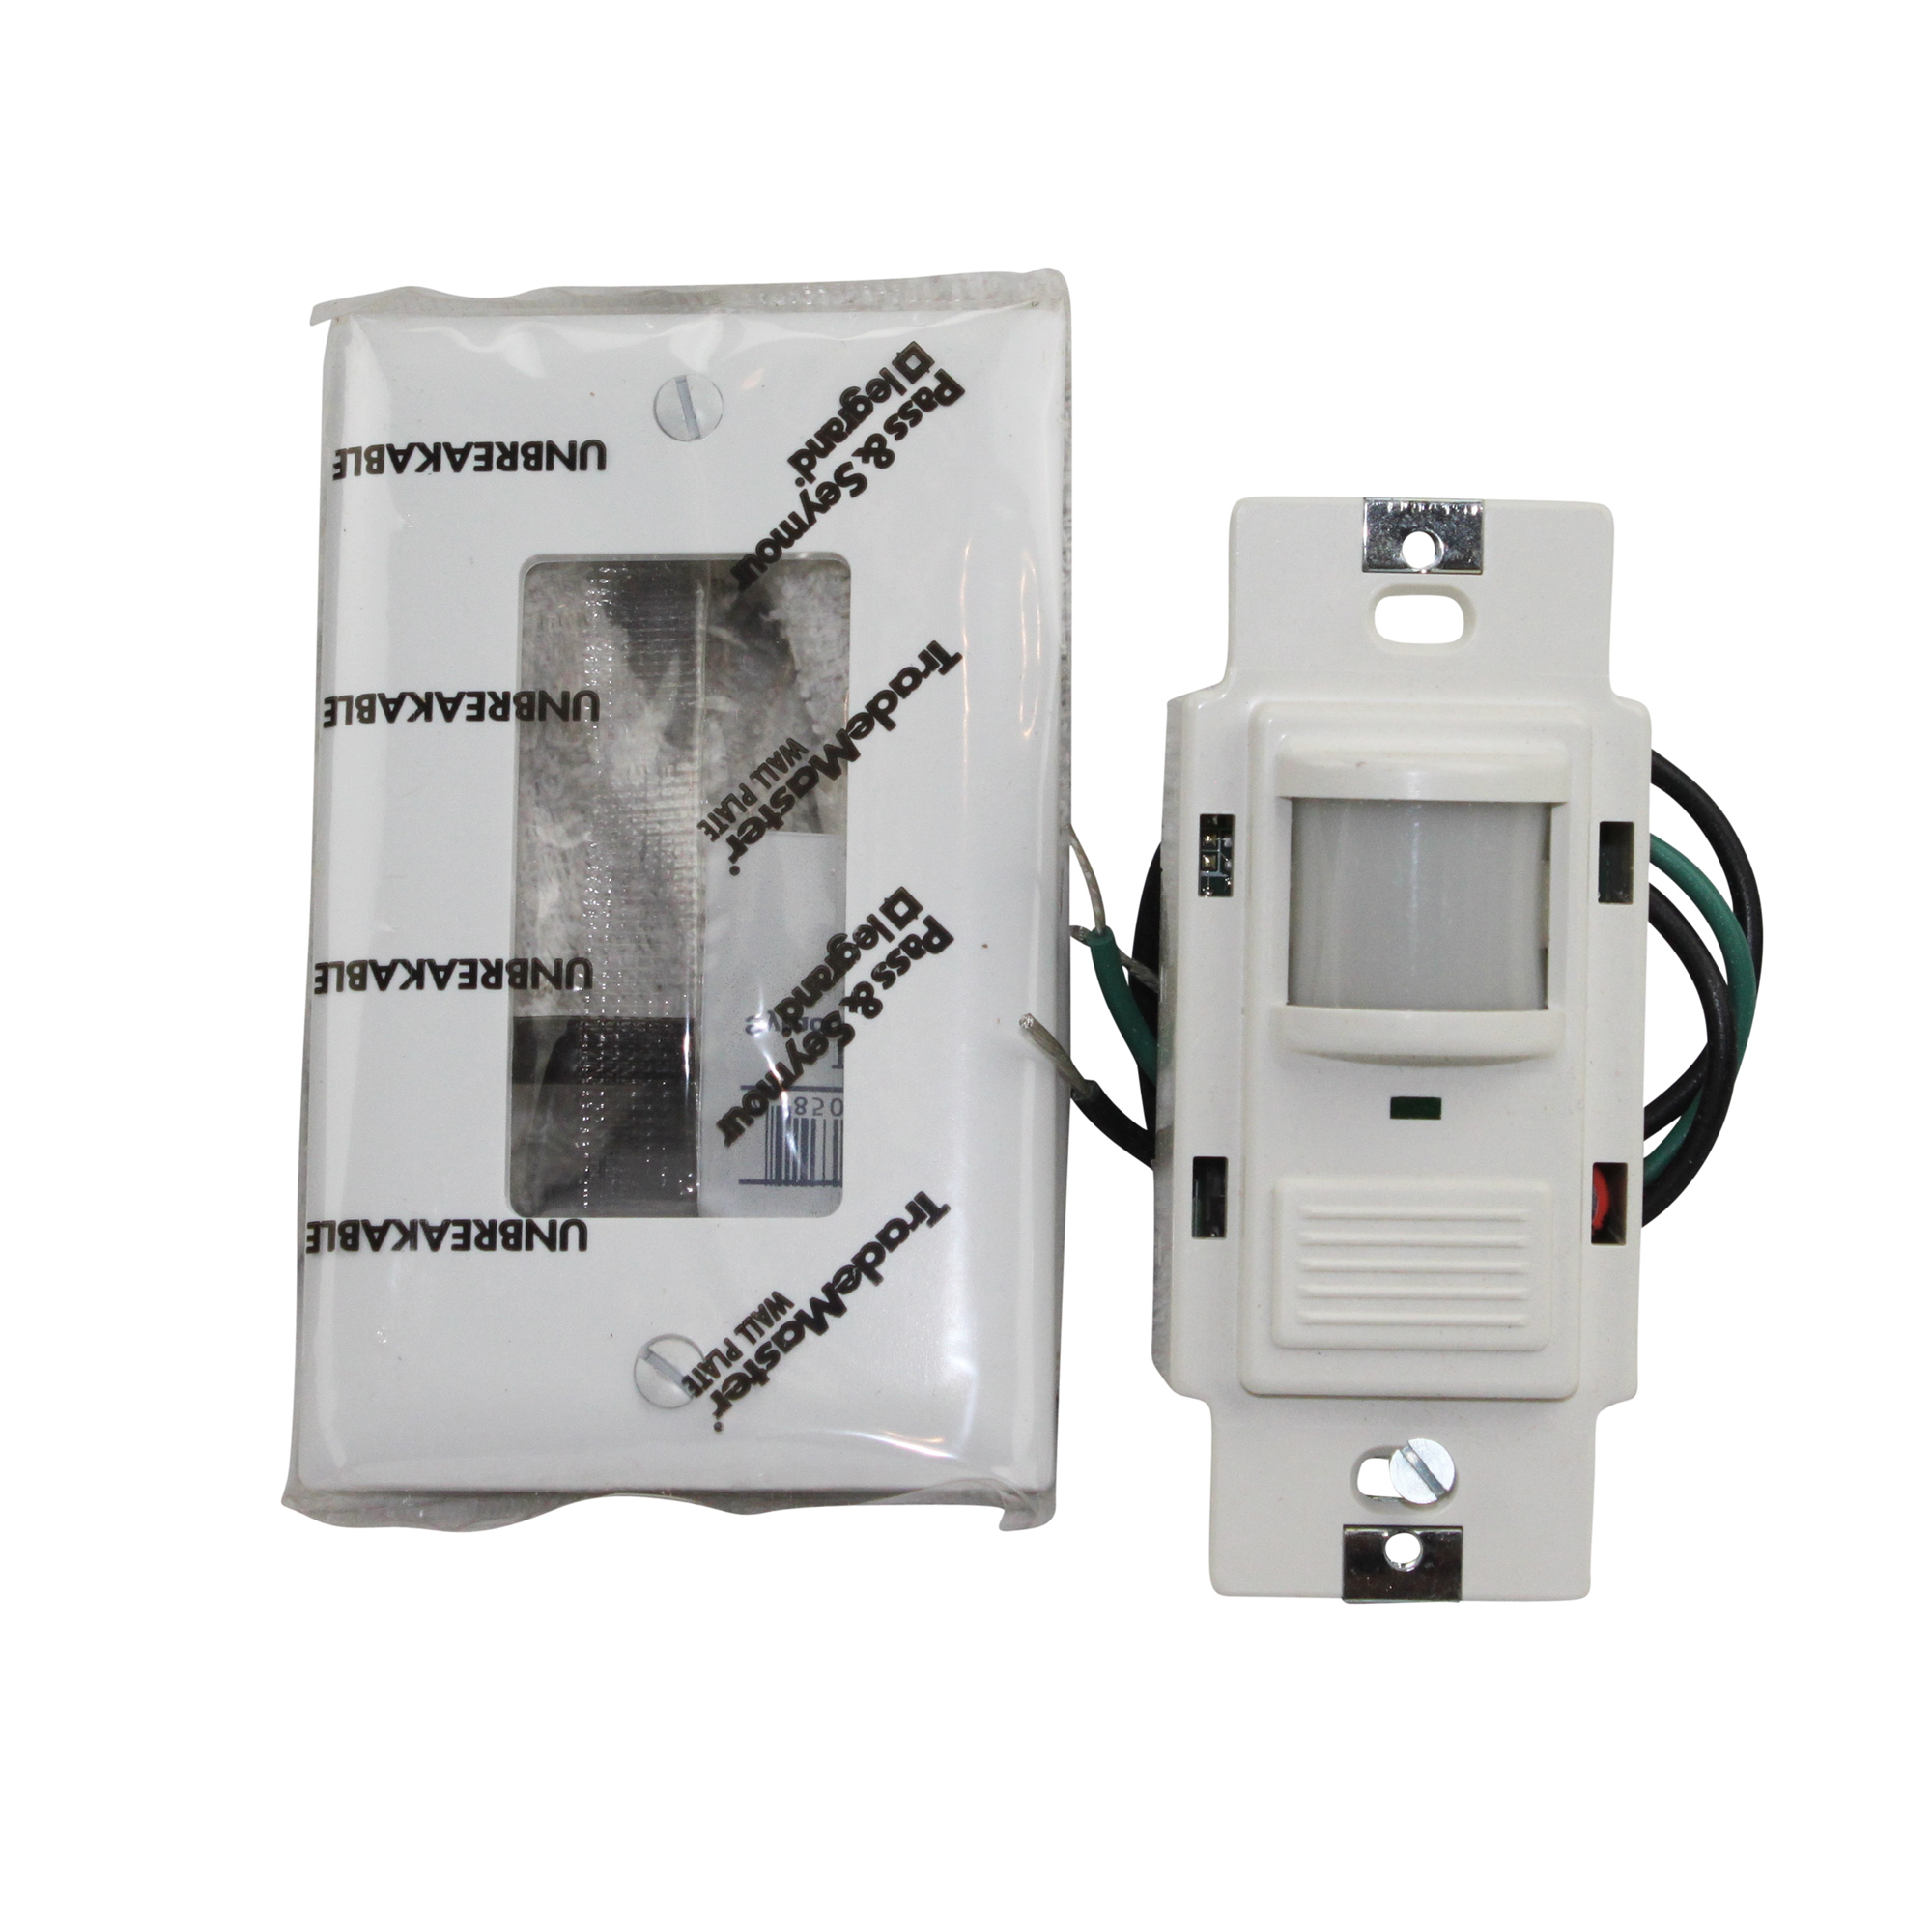 Sensor Switch Lithonia Wsd-Vr Passive Infrared Occupancy Sensor Pir Wall Switch Vandal Resistant 120